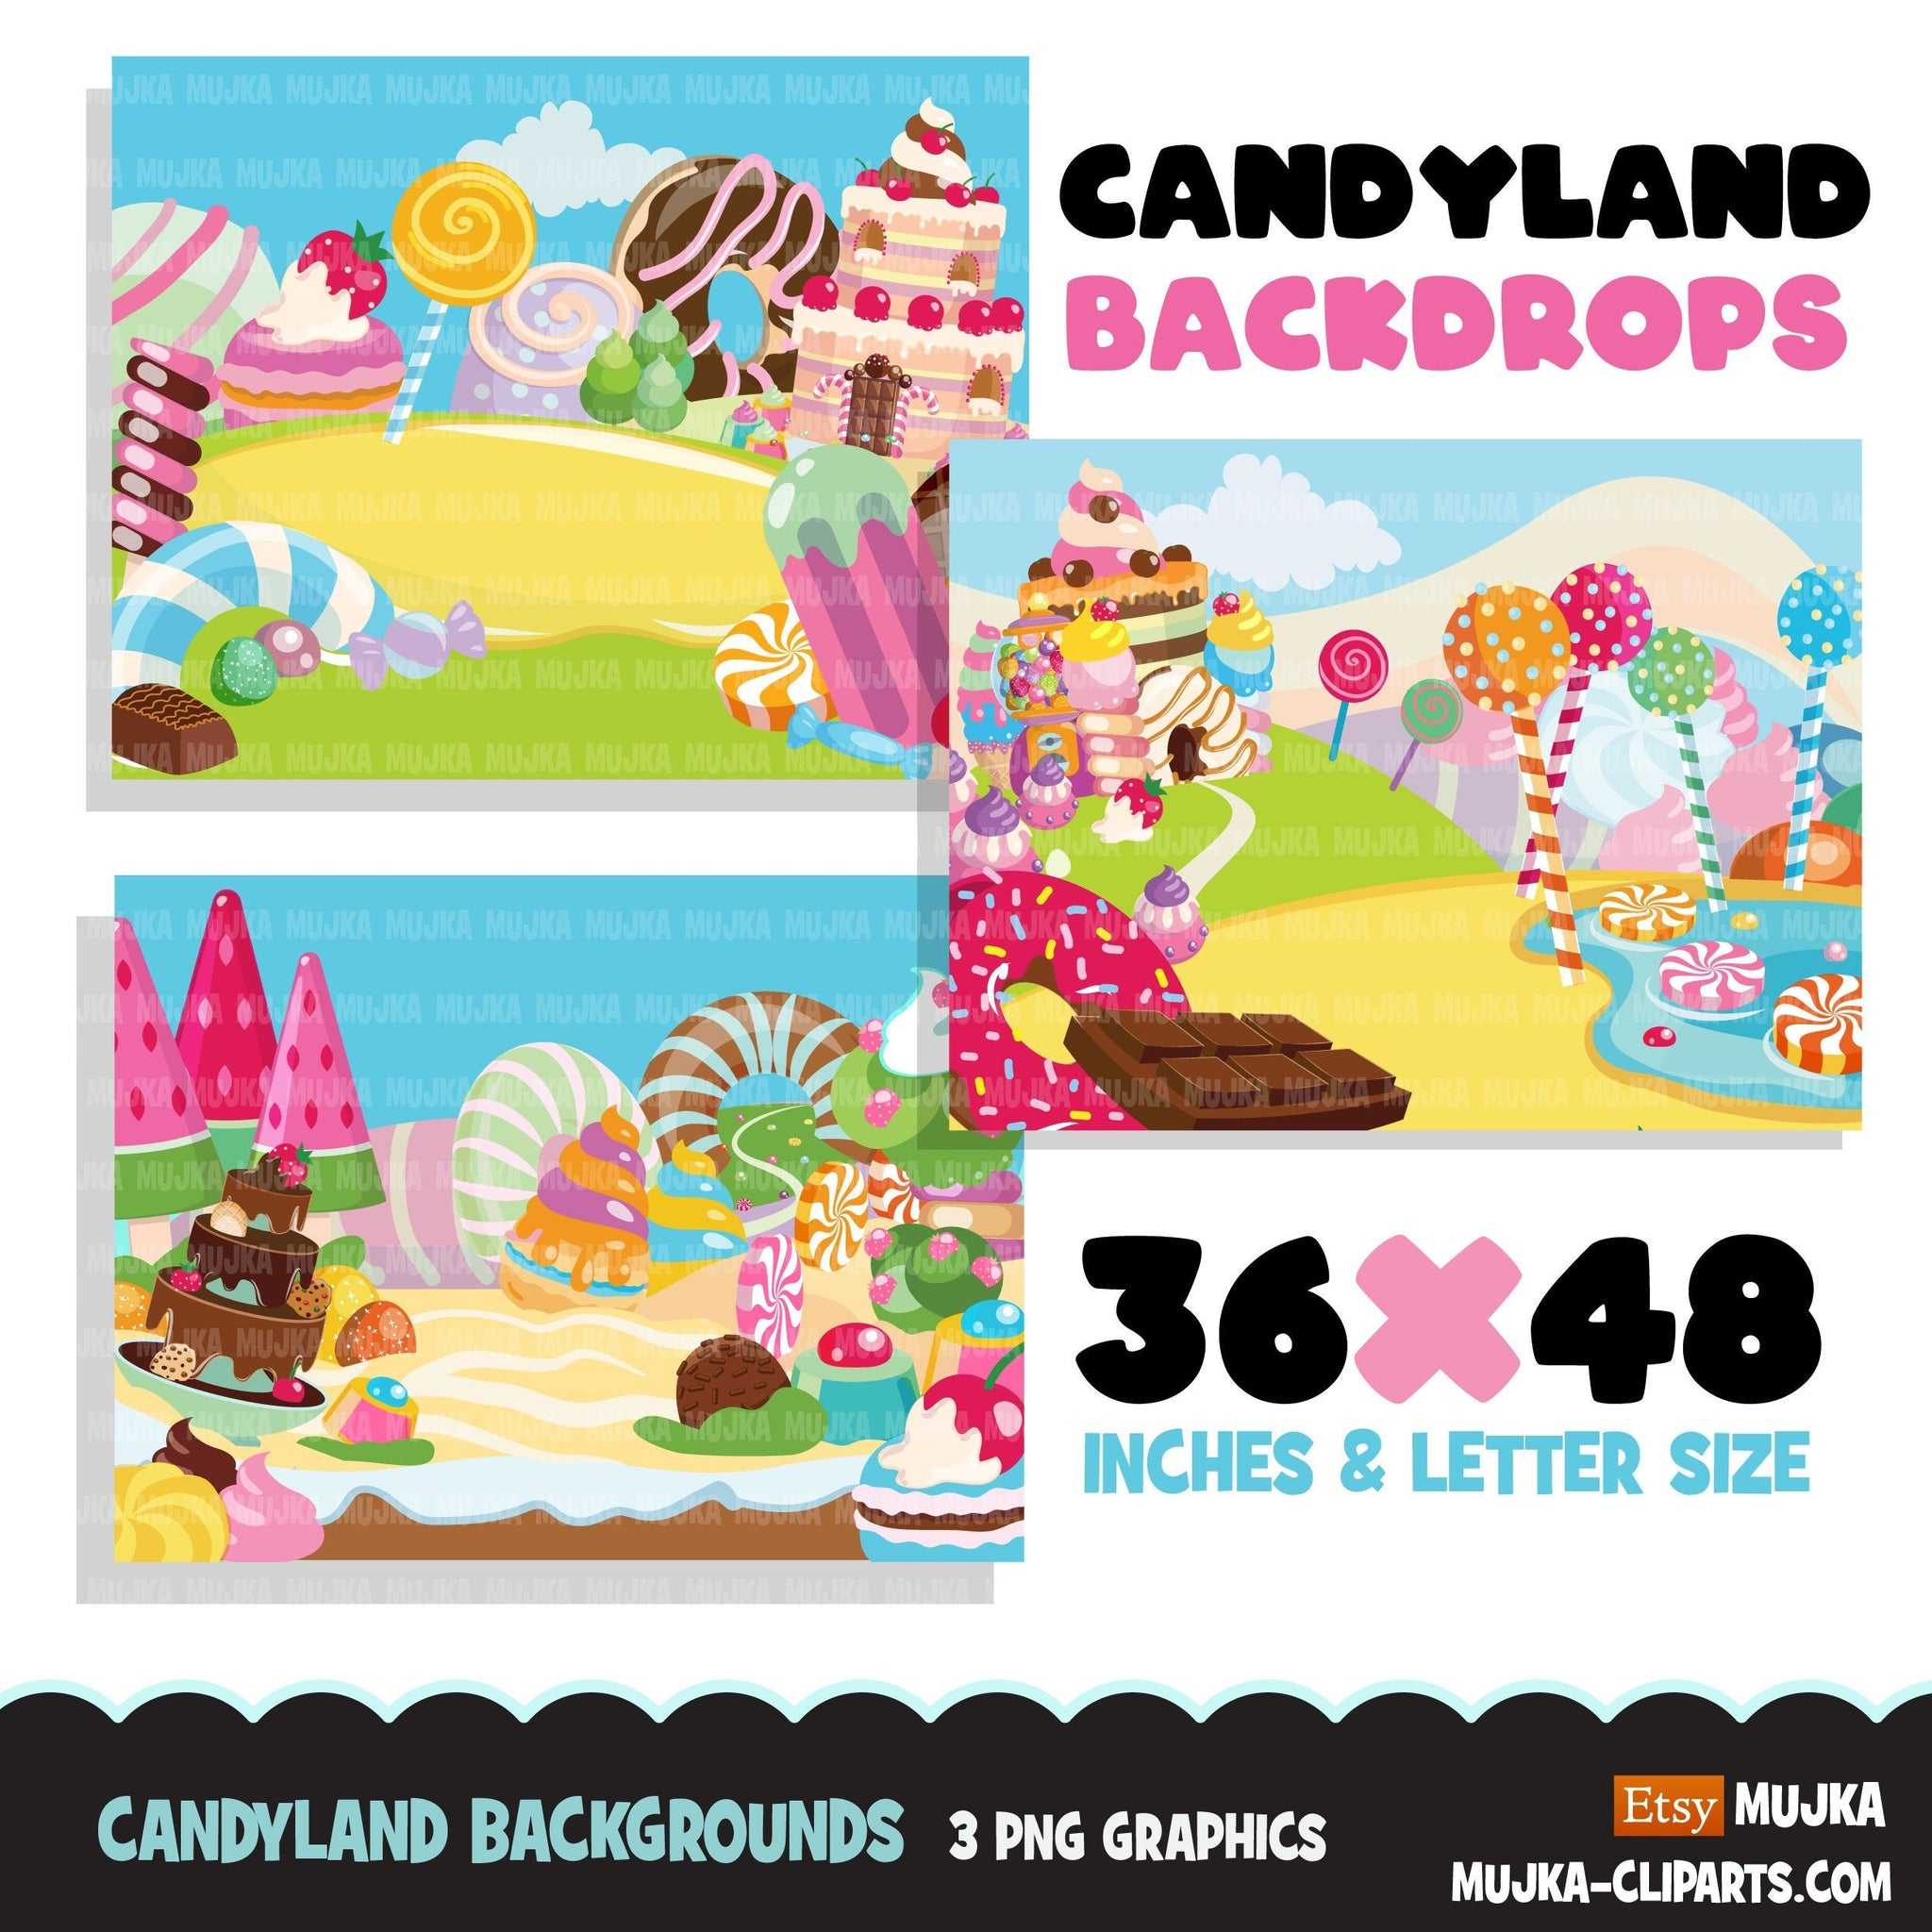 Candy land Backgrounds Clipart, sugar, lollipop rainbow, cupcake, truffles and chocolate graphics, backdrop commercial use printable